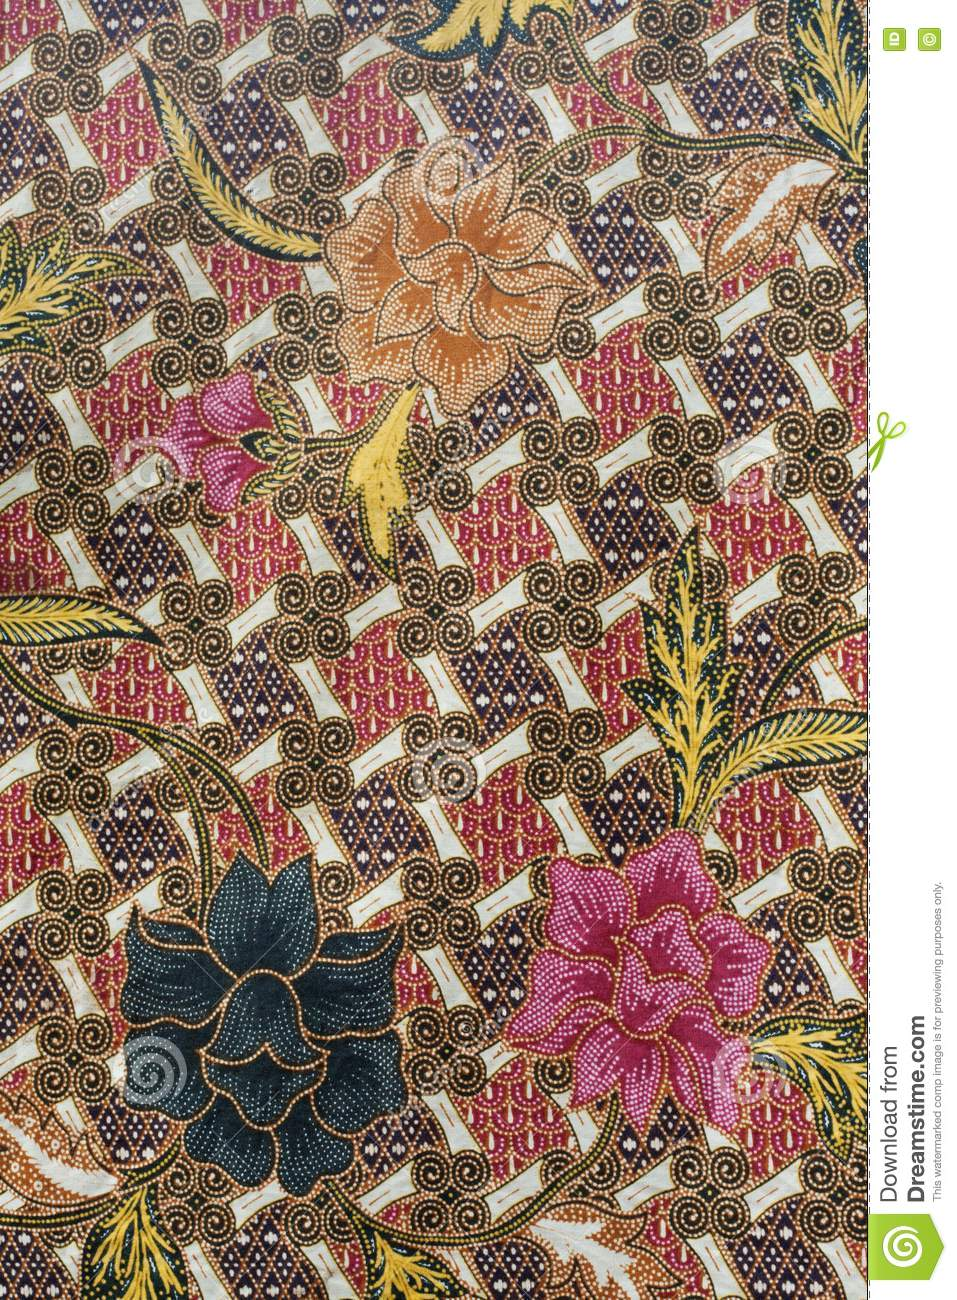 Batik Design In Thailand Royalty Free Stock Photography